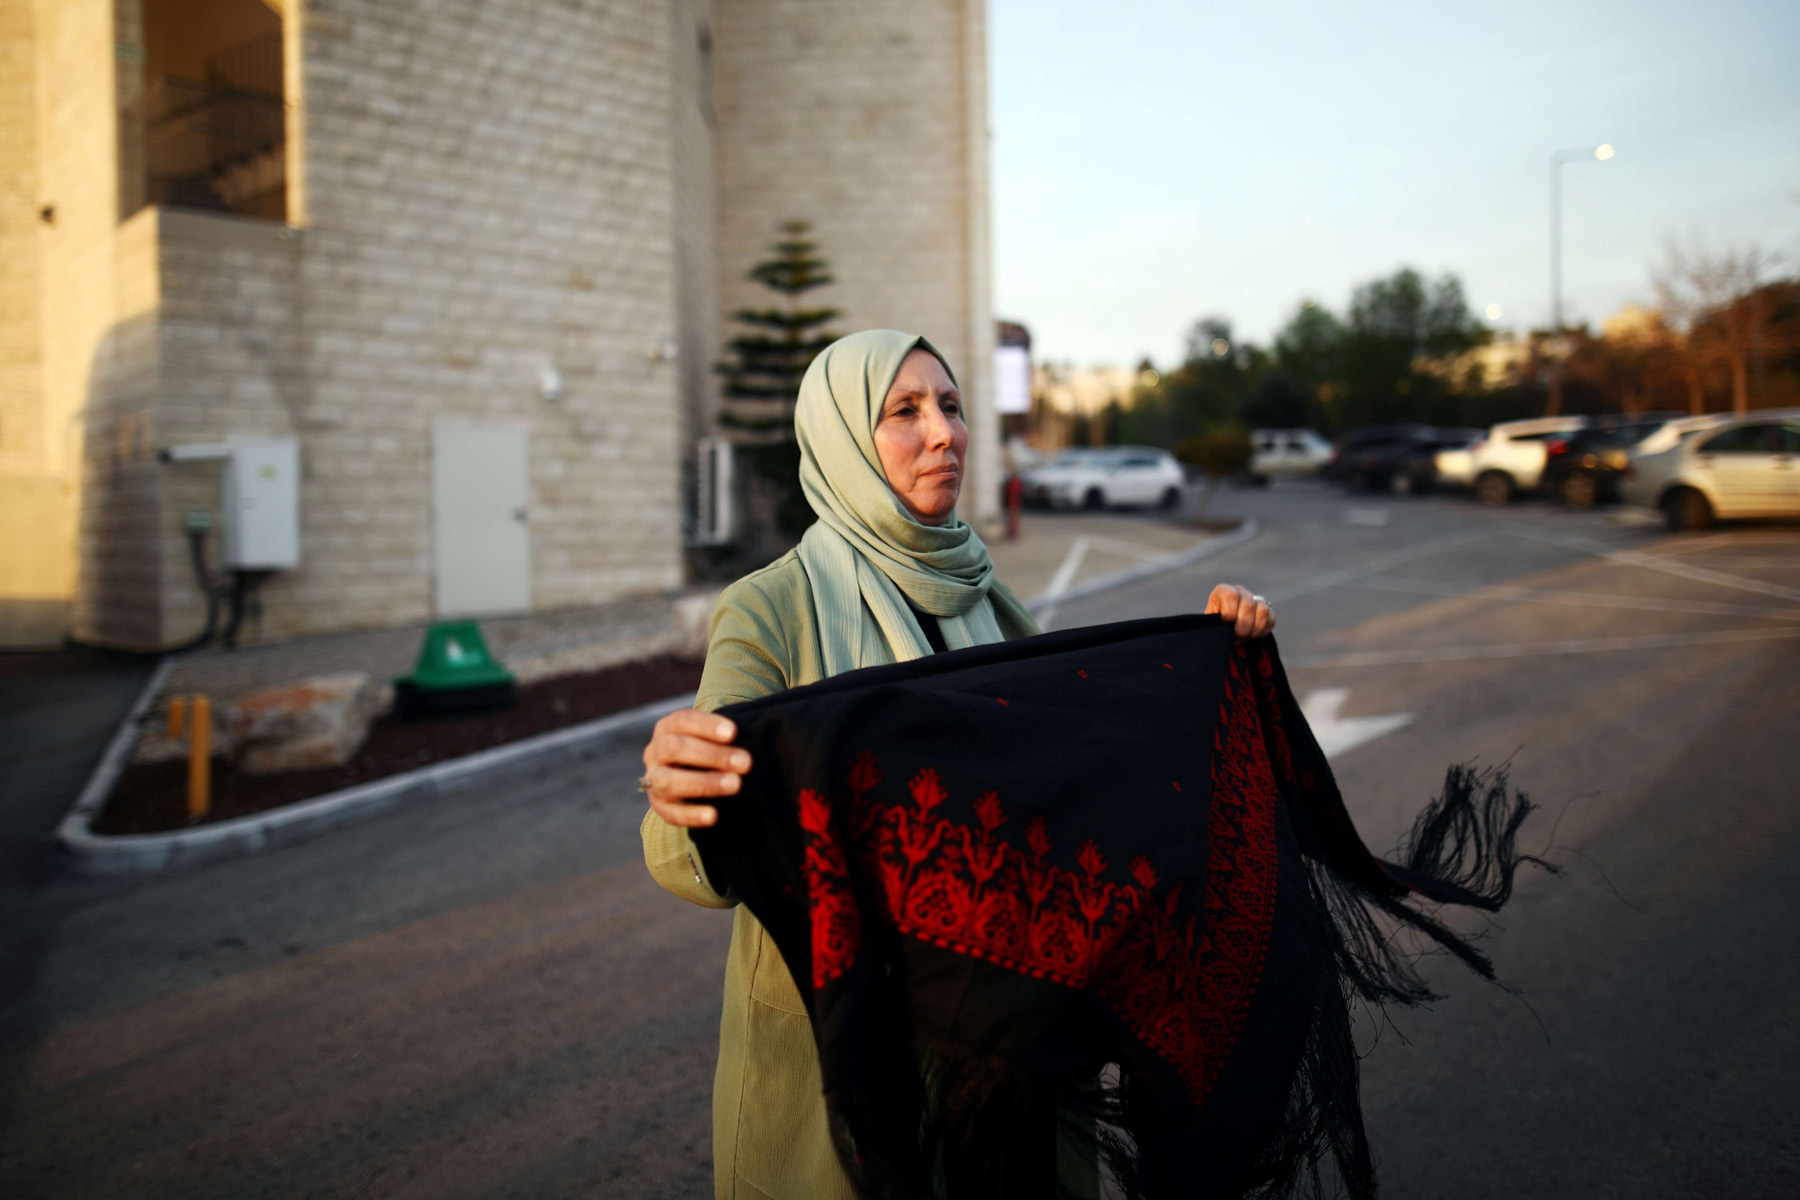 Incoming lawmaker Iman Khatib Yasin holds a Palestinian scarf in Nazareth after her Arab Joint List's results in Israeli elections. (Reuters)